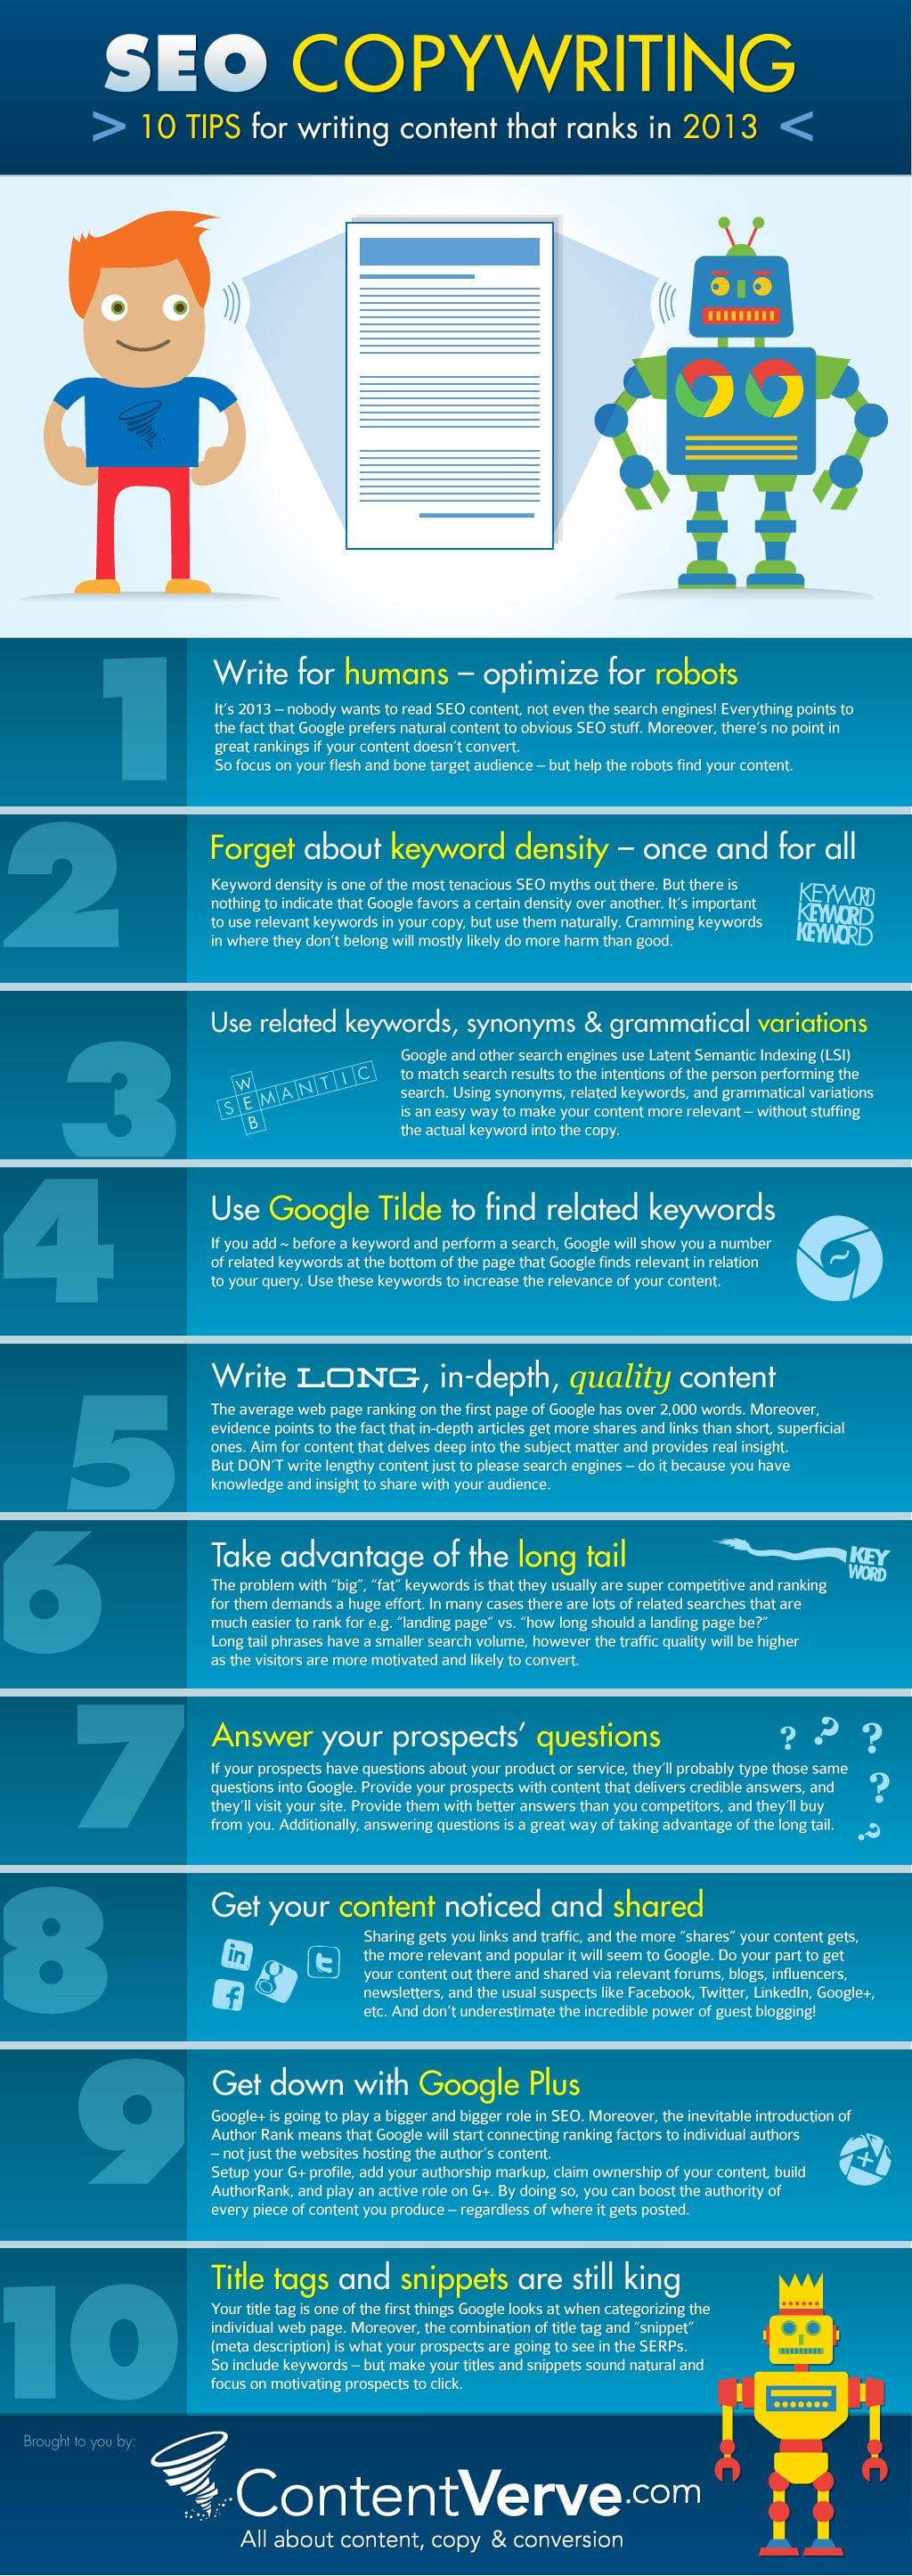 seo-copywriting-content-ranking-infographic